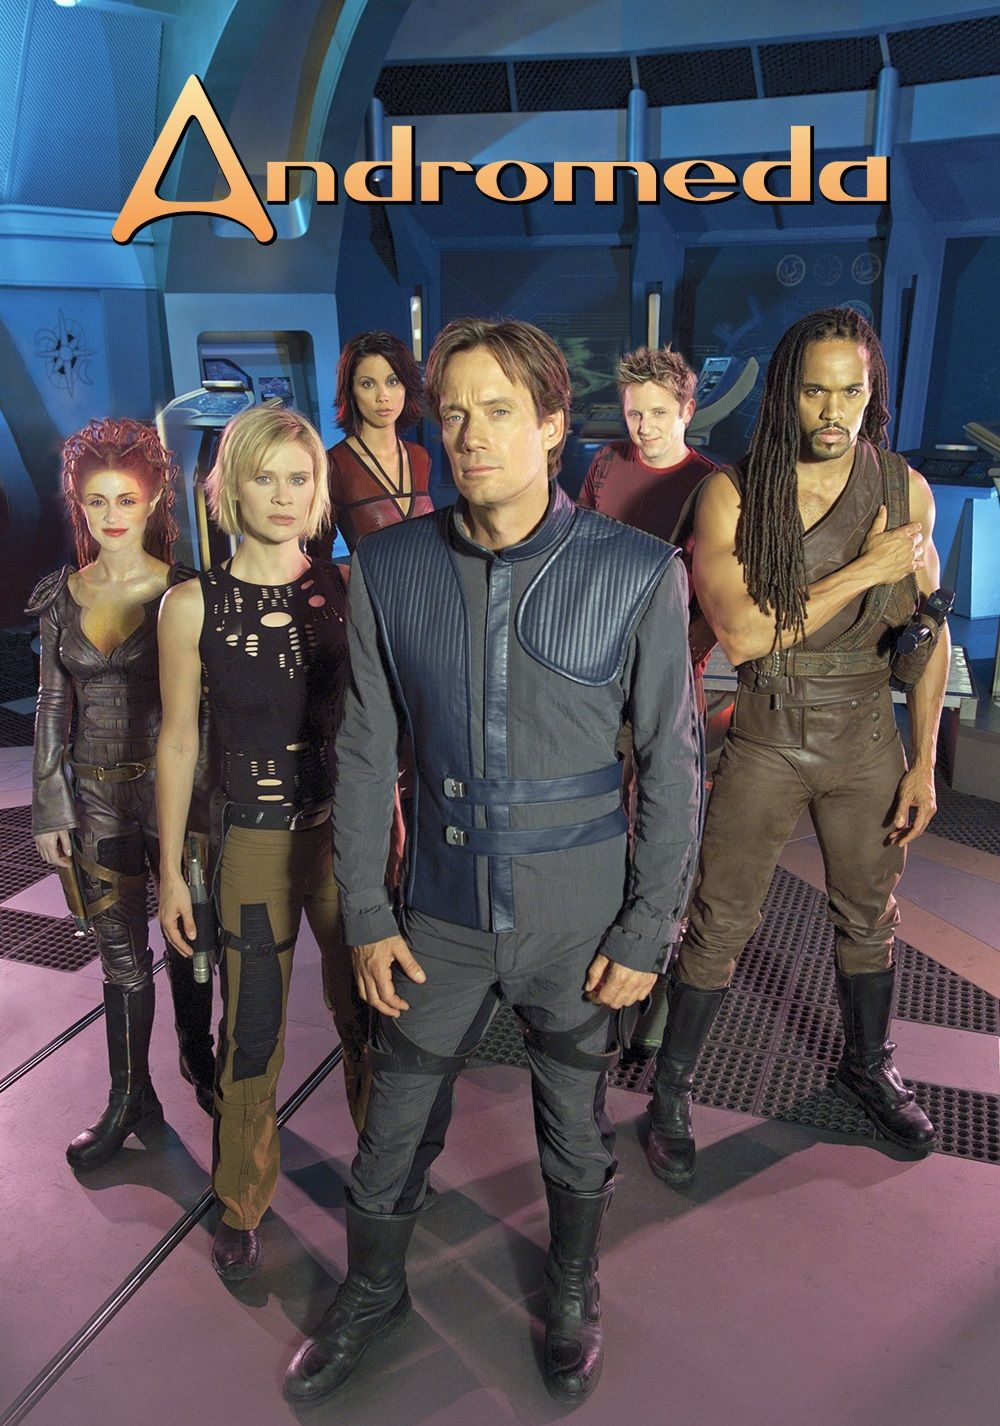 Andromeda (TV Series 2000–2005) - IMDb